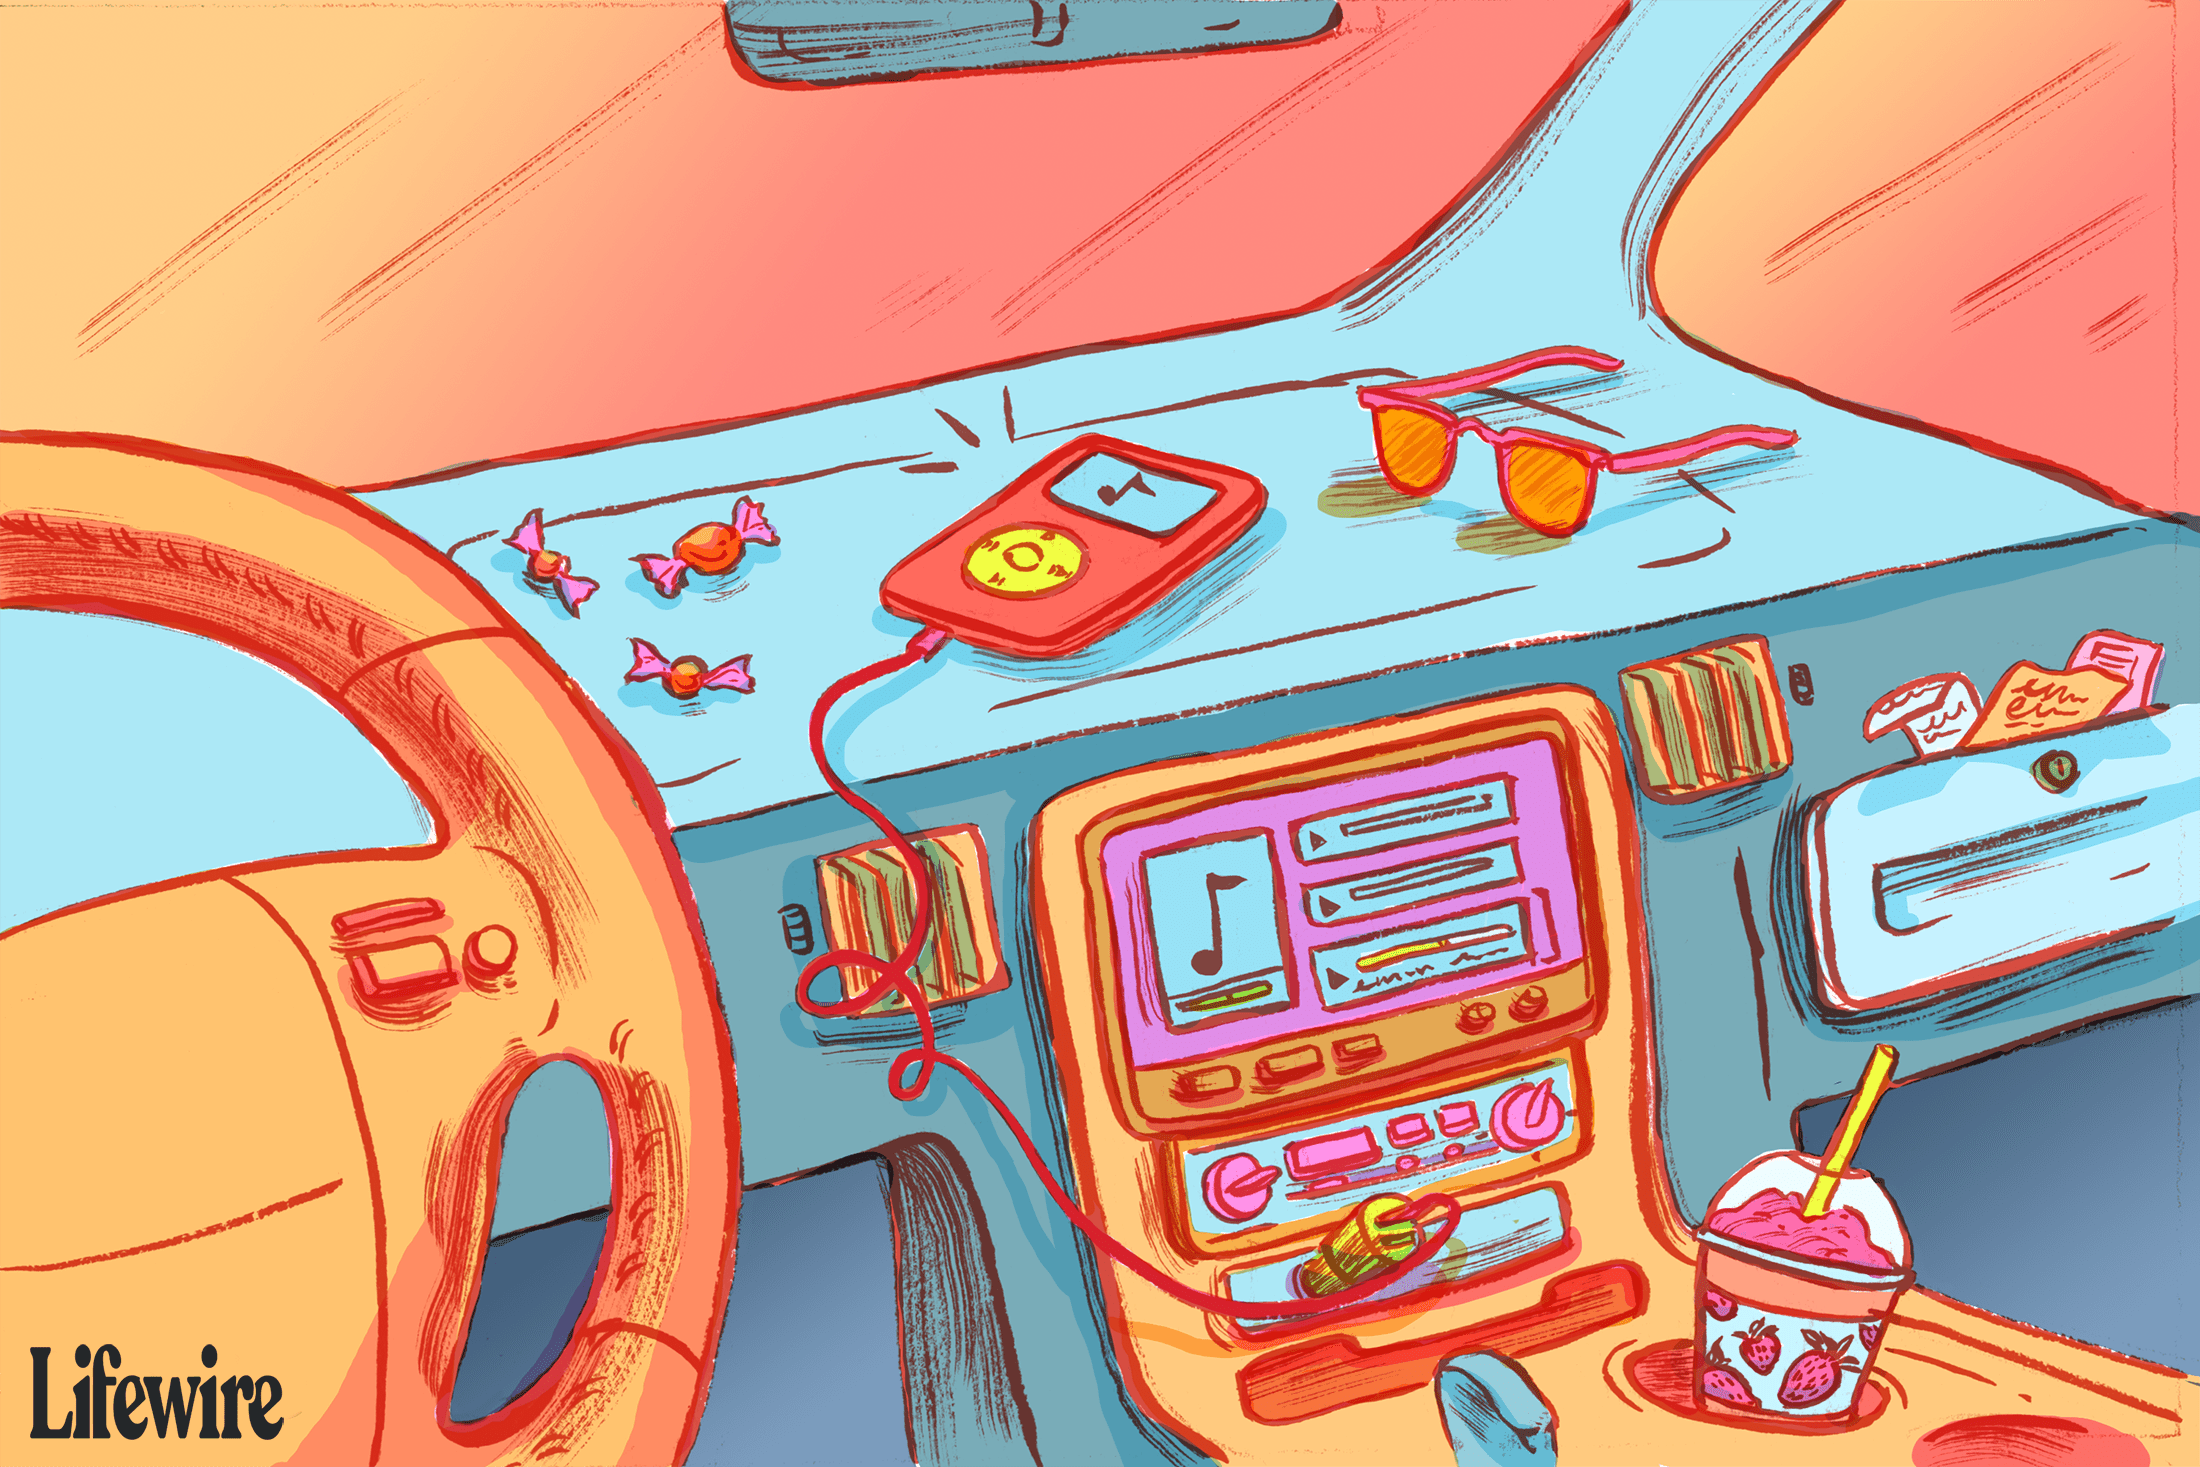 Illustration showing an iPad connected to a USB port in an older car